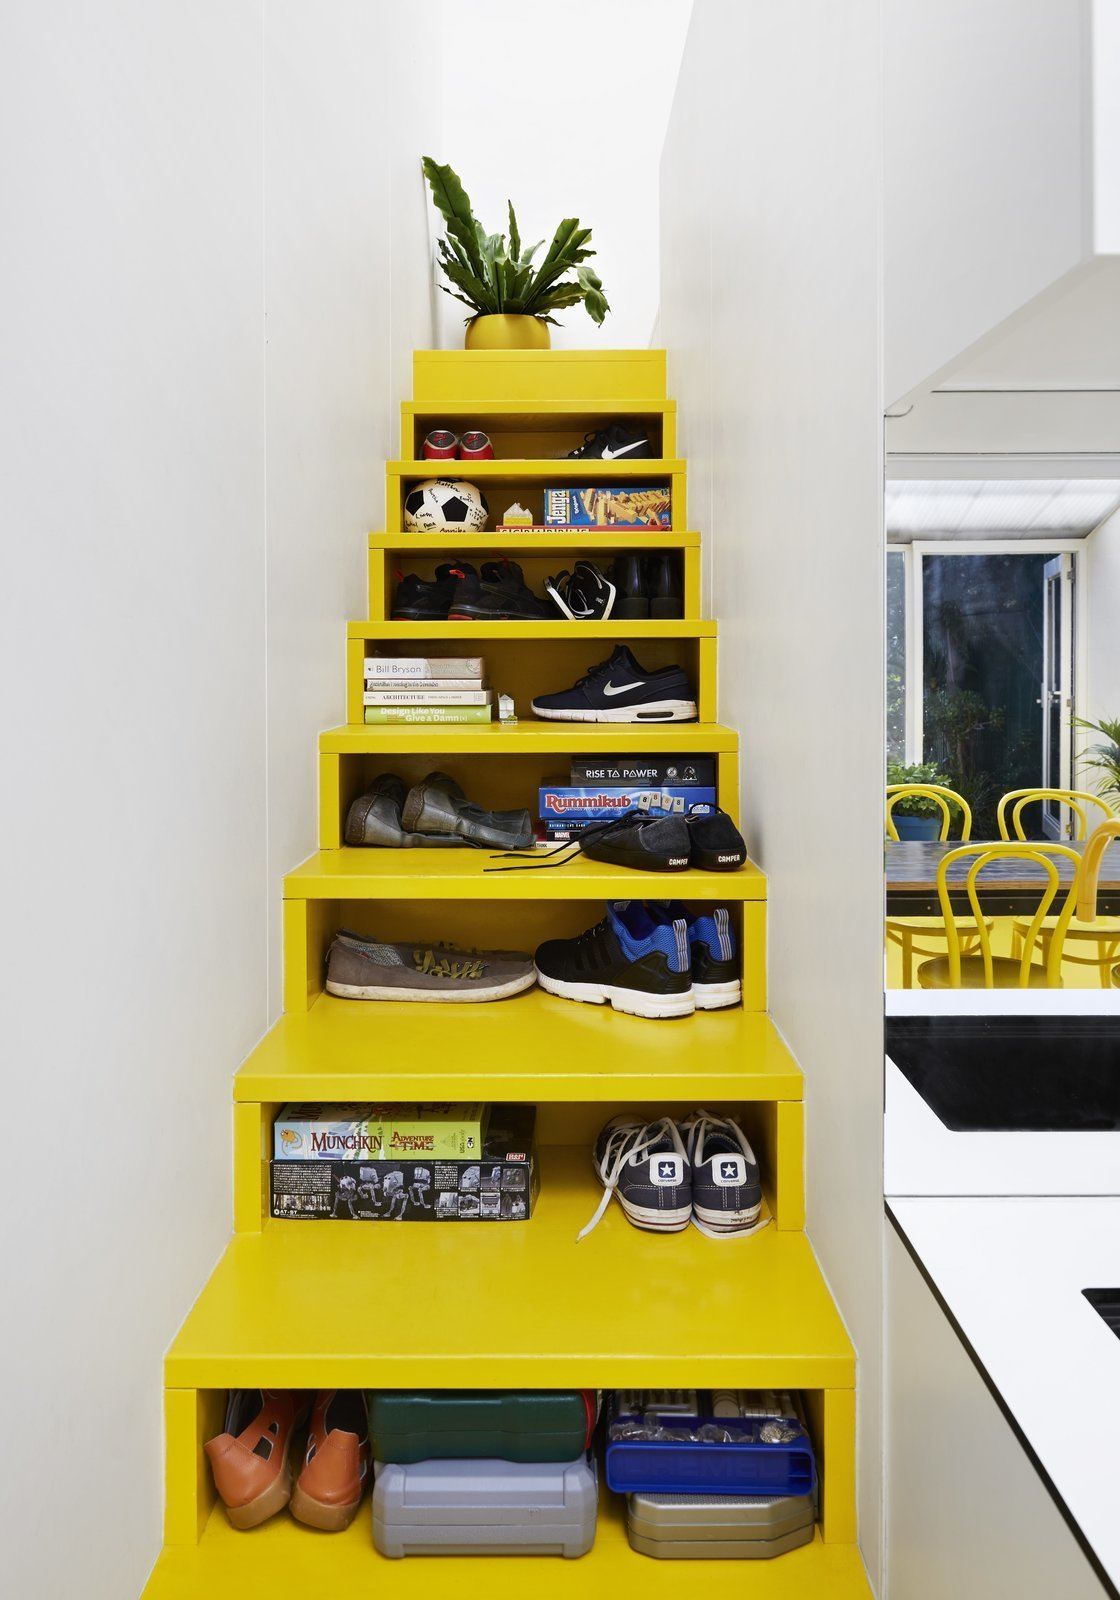 Architect Andrew Maynard's Melbourne home, which also doubles up as the office of his practice Austin Maynard Architects, includes a bright yellow staircase with opening slots in the front that serve as shelving and storage space.  Photo 9 of 10 in 10 Homes With Clever Storage Solutions